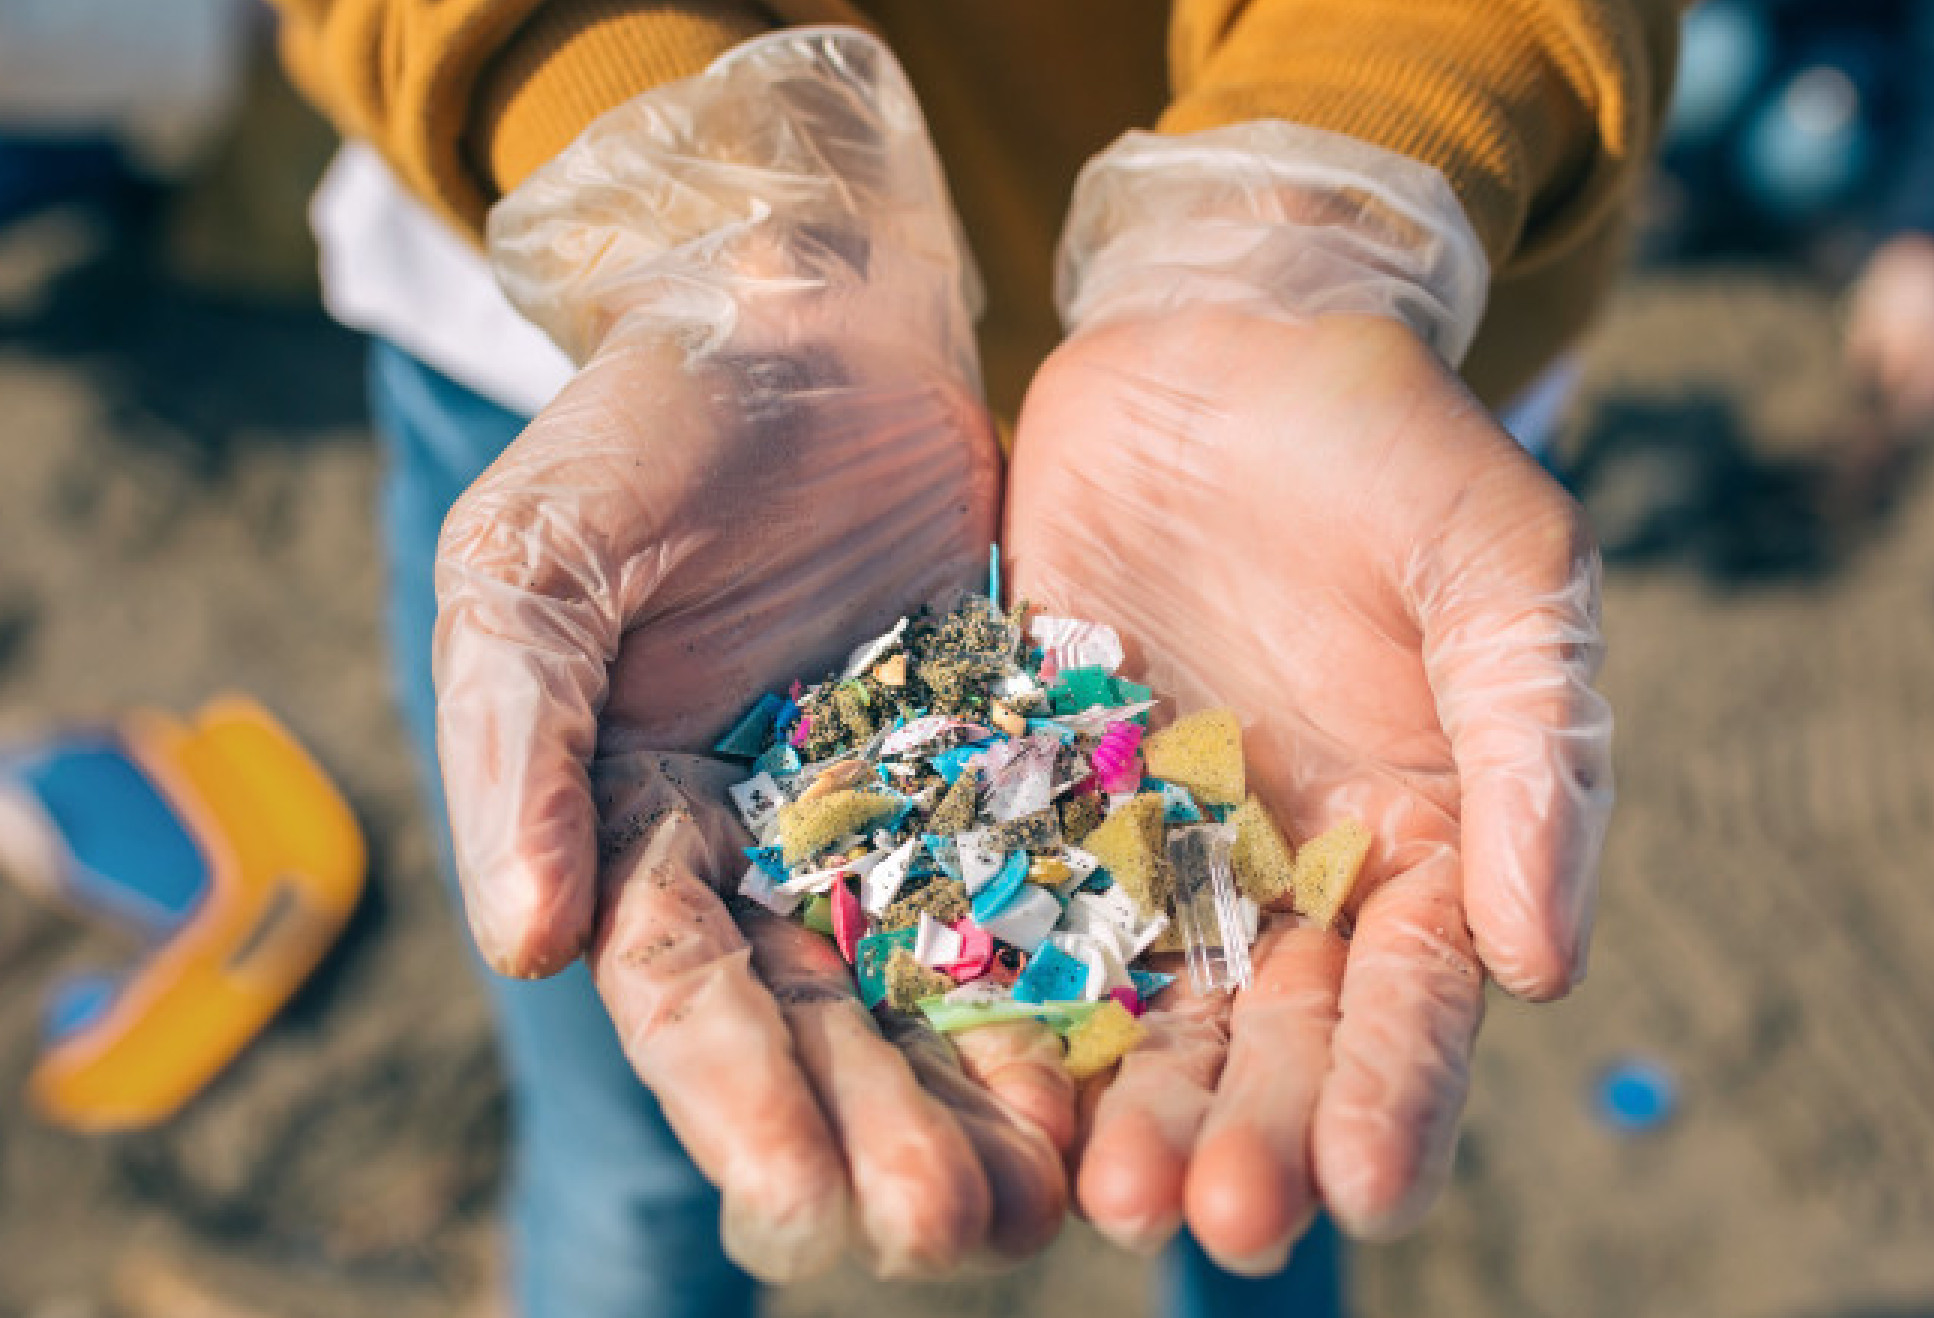 Microplastics collected on a beach